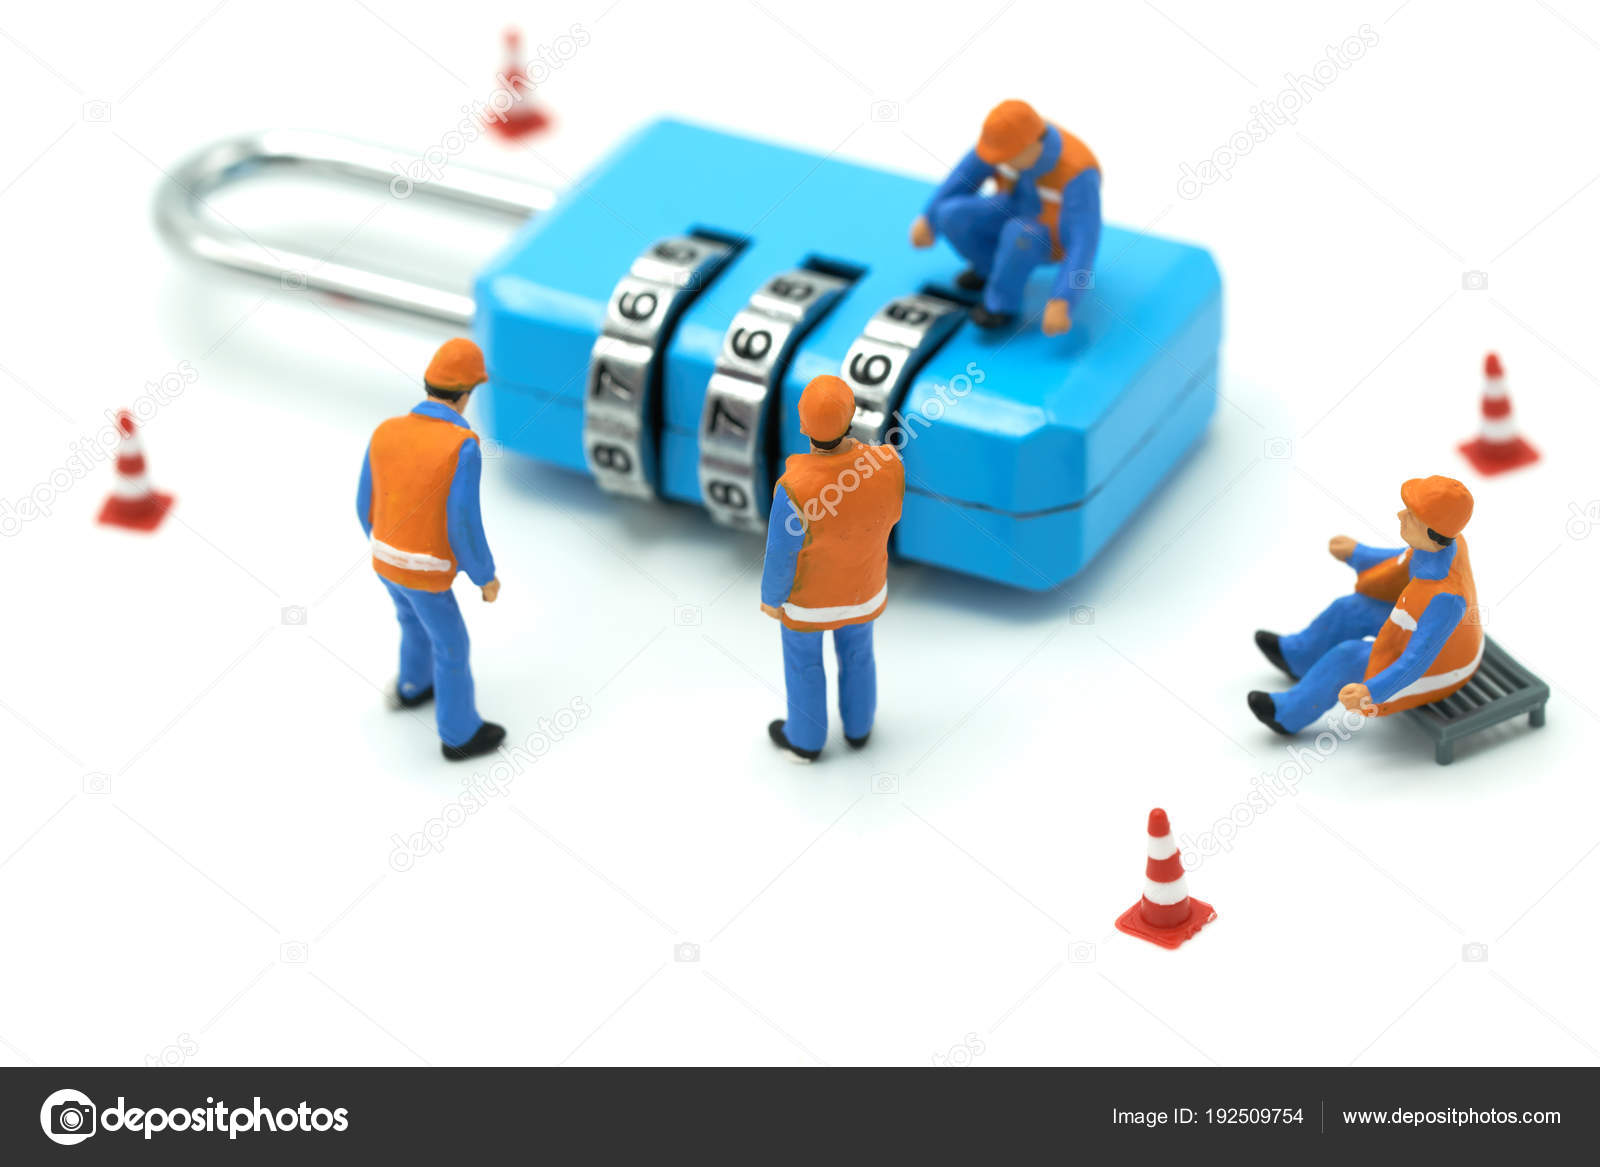 Miniature People Construction Worker Security Key Repair